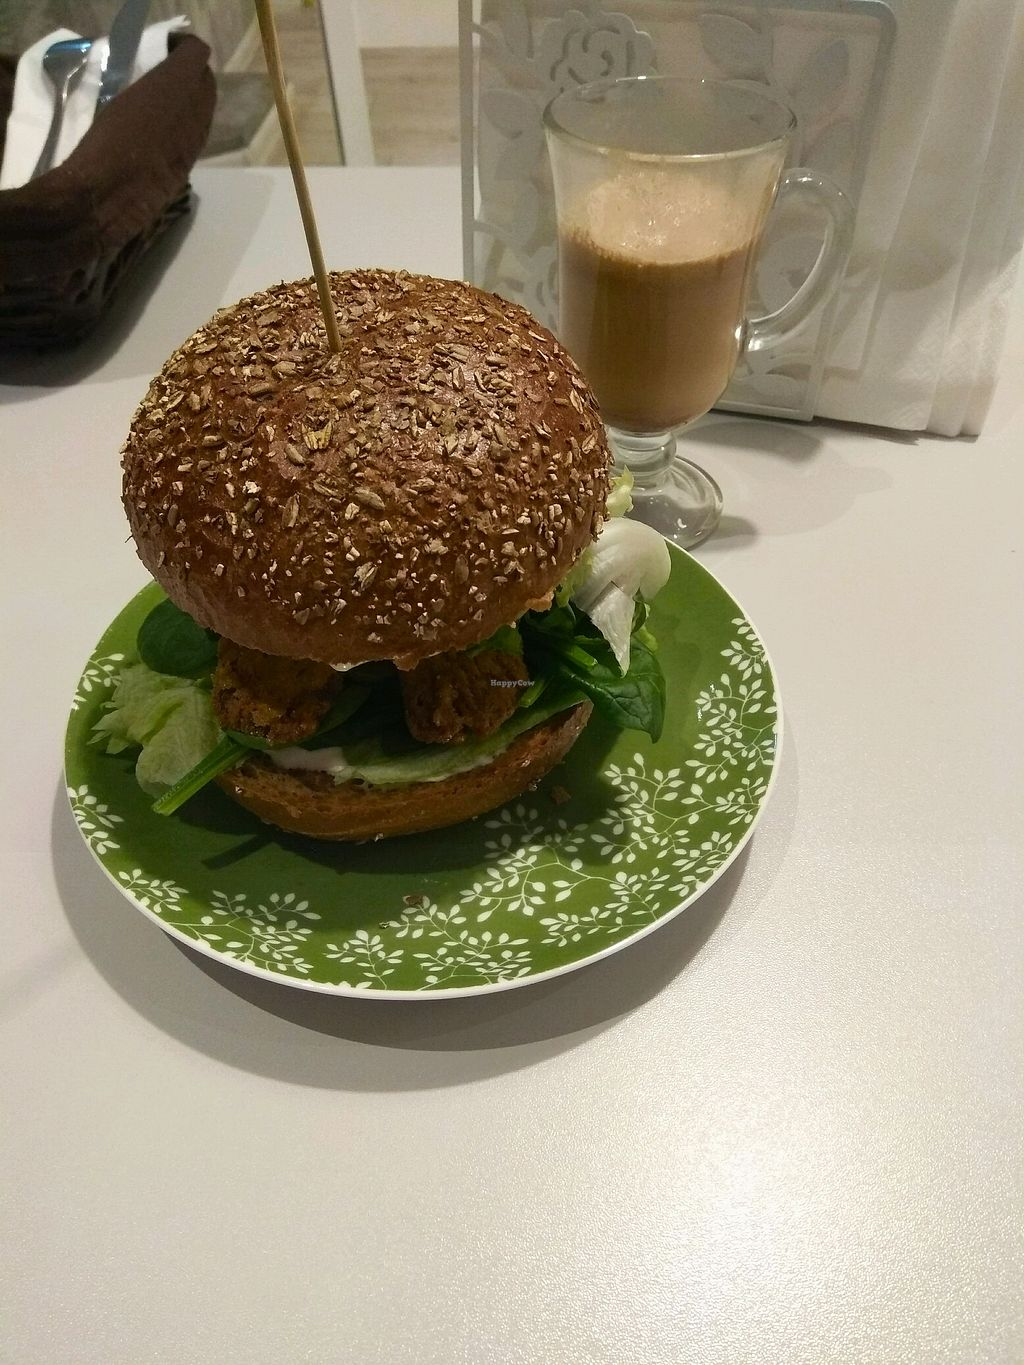 """Photo of Zielona Micha  by <a href=""""/members/profile/Rene.Zinho"""">Rene.Zinho</a> <br/>most delicious burger for everyone who likes mushrooms. not on the menu on the wall. just ask for it. ;) <br/> November 29, 2017  - <a href='/contact/abuse/image/94991/330633'>Report</a>"""